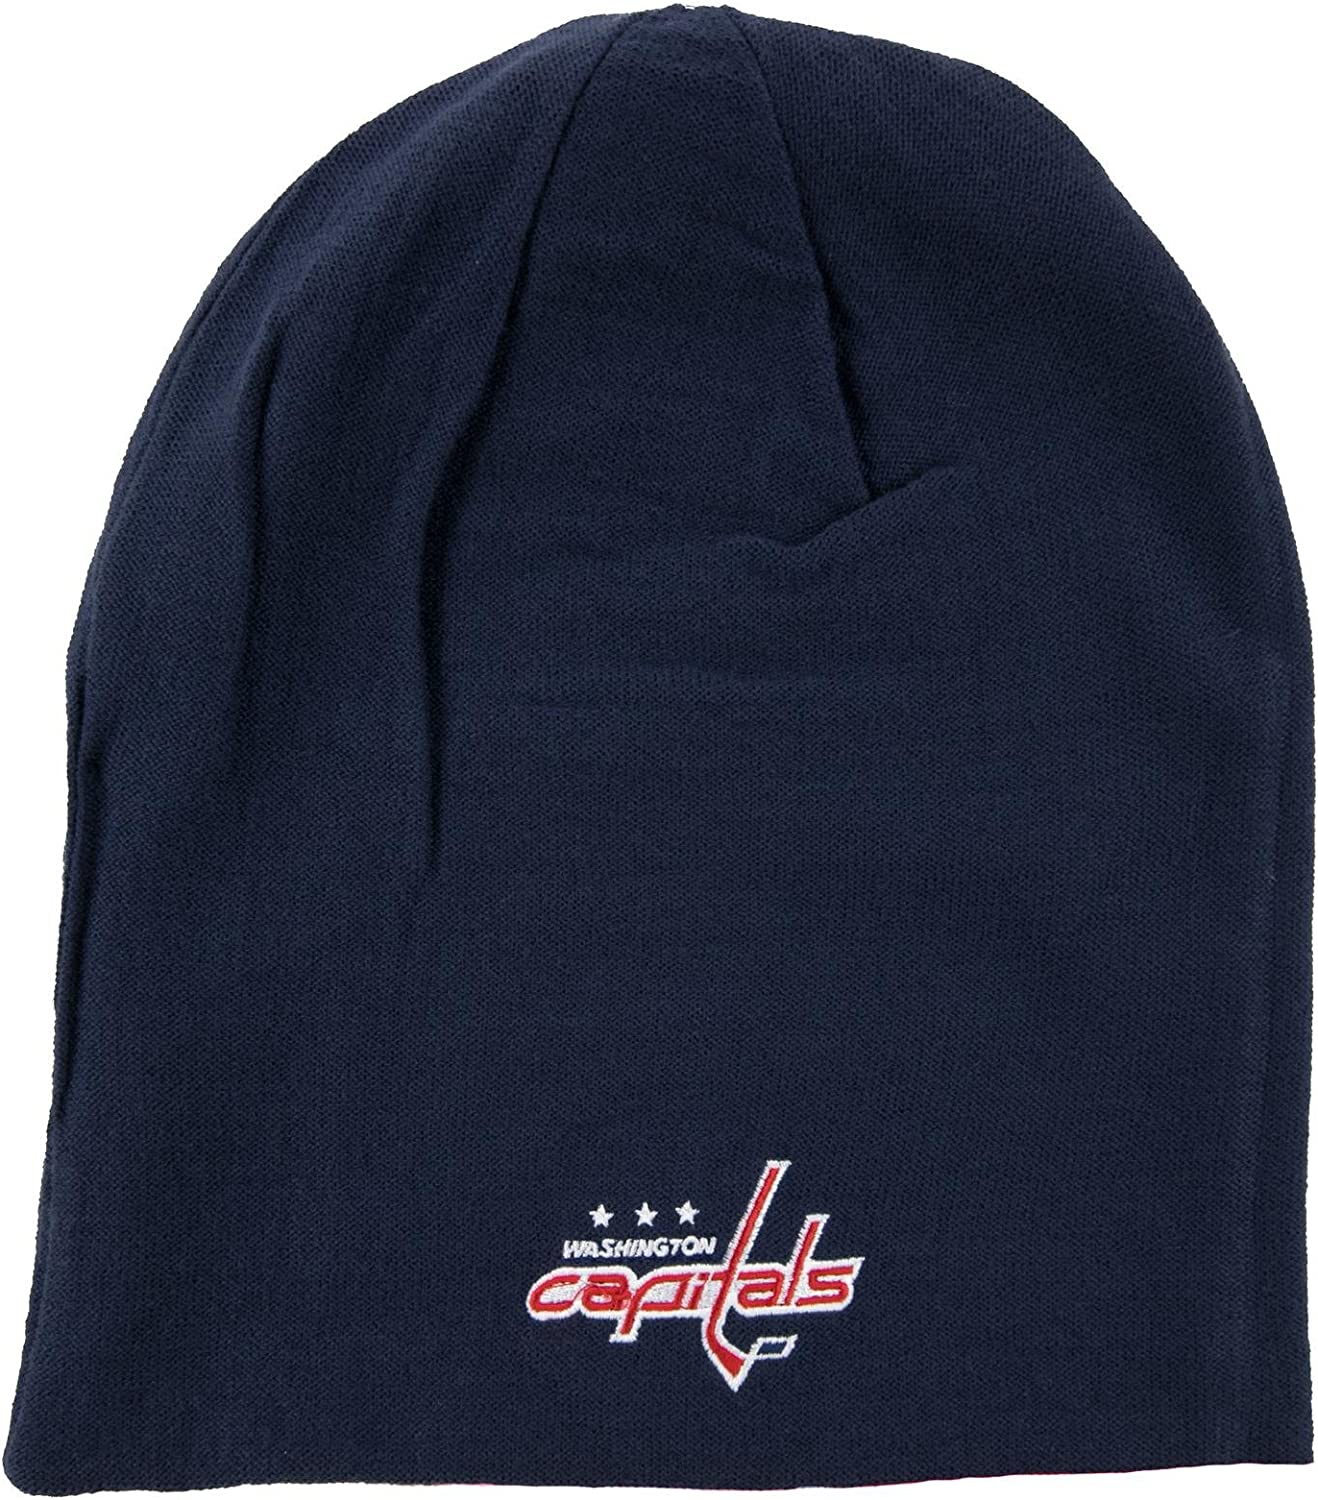 Reebok Washington Capitals Faceoff Long Reversible Knit Hat One Size Fits All